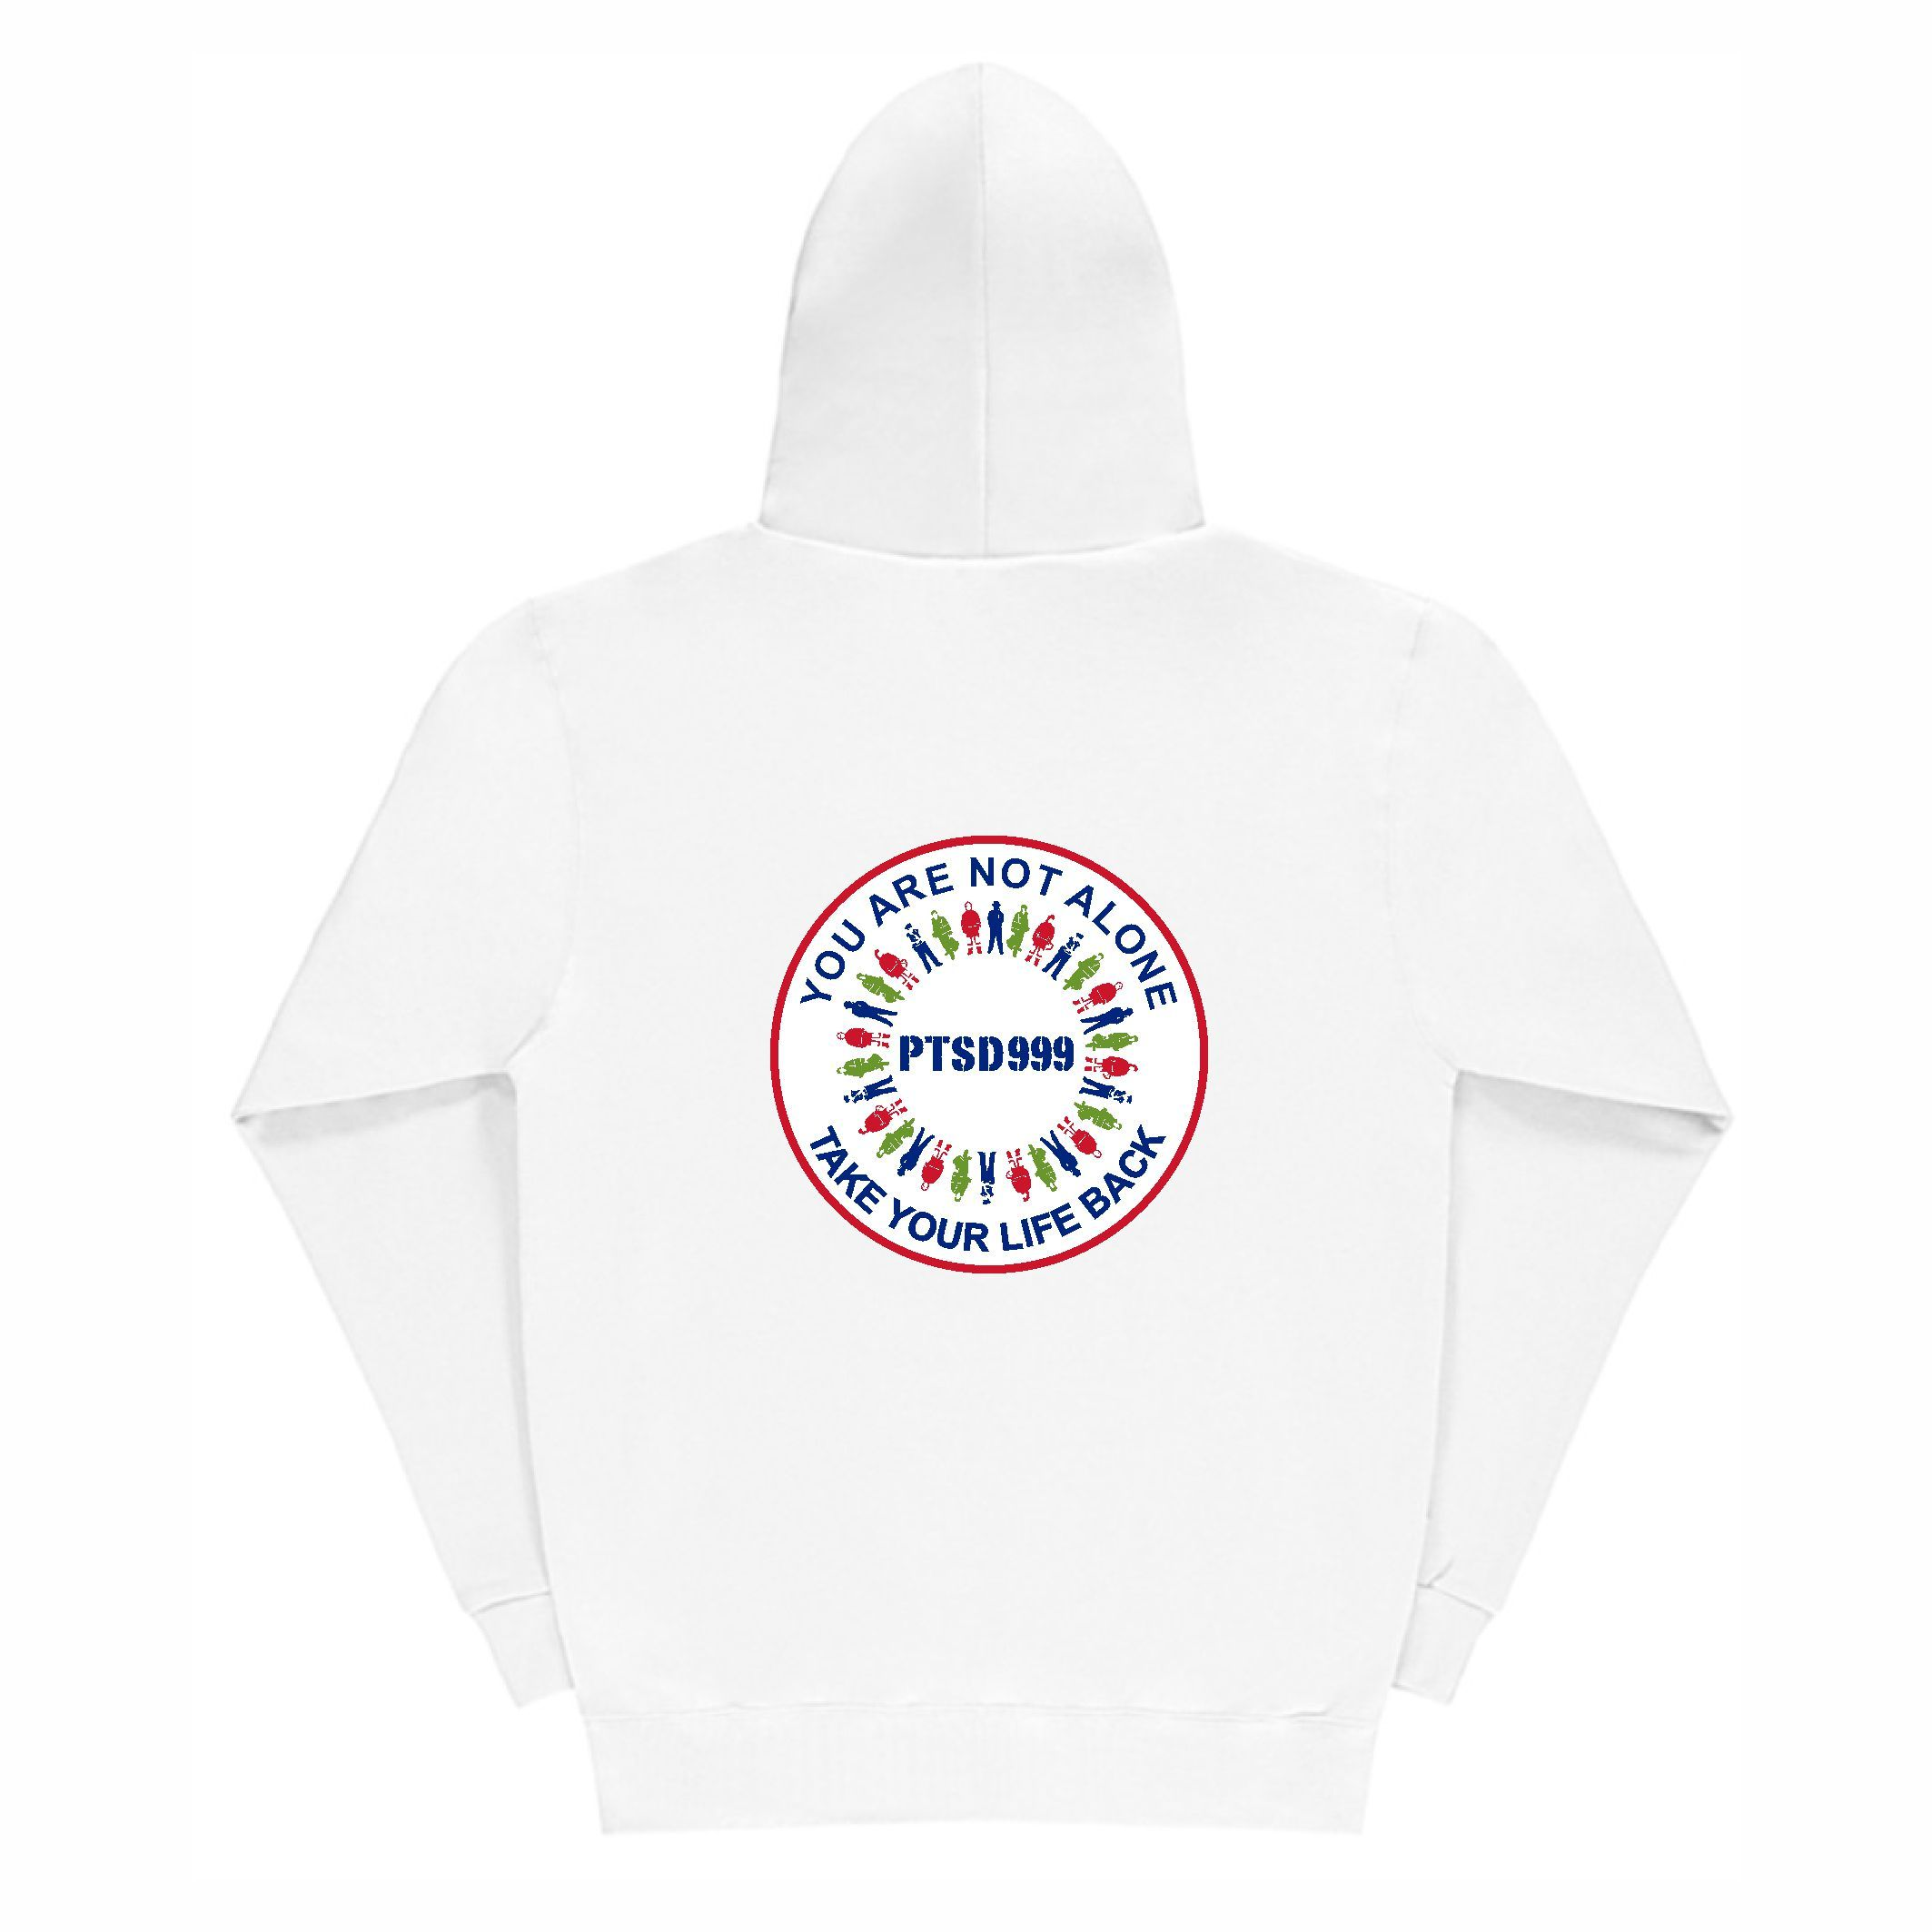 PTSD999- 'You Are Not Alone' Men's Hoodie